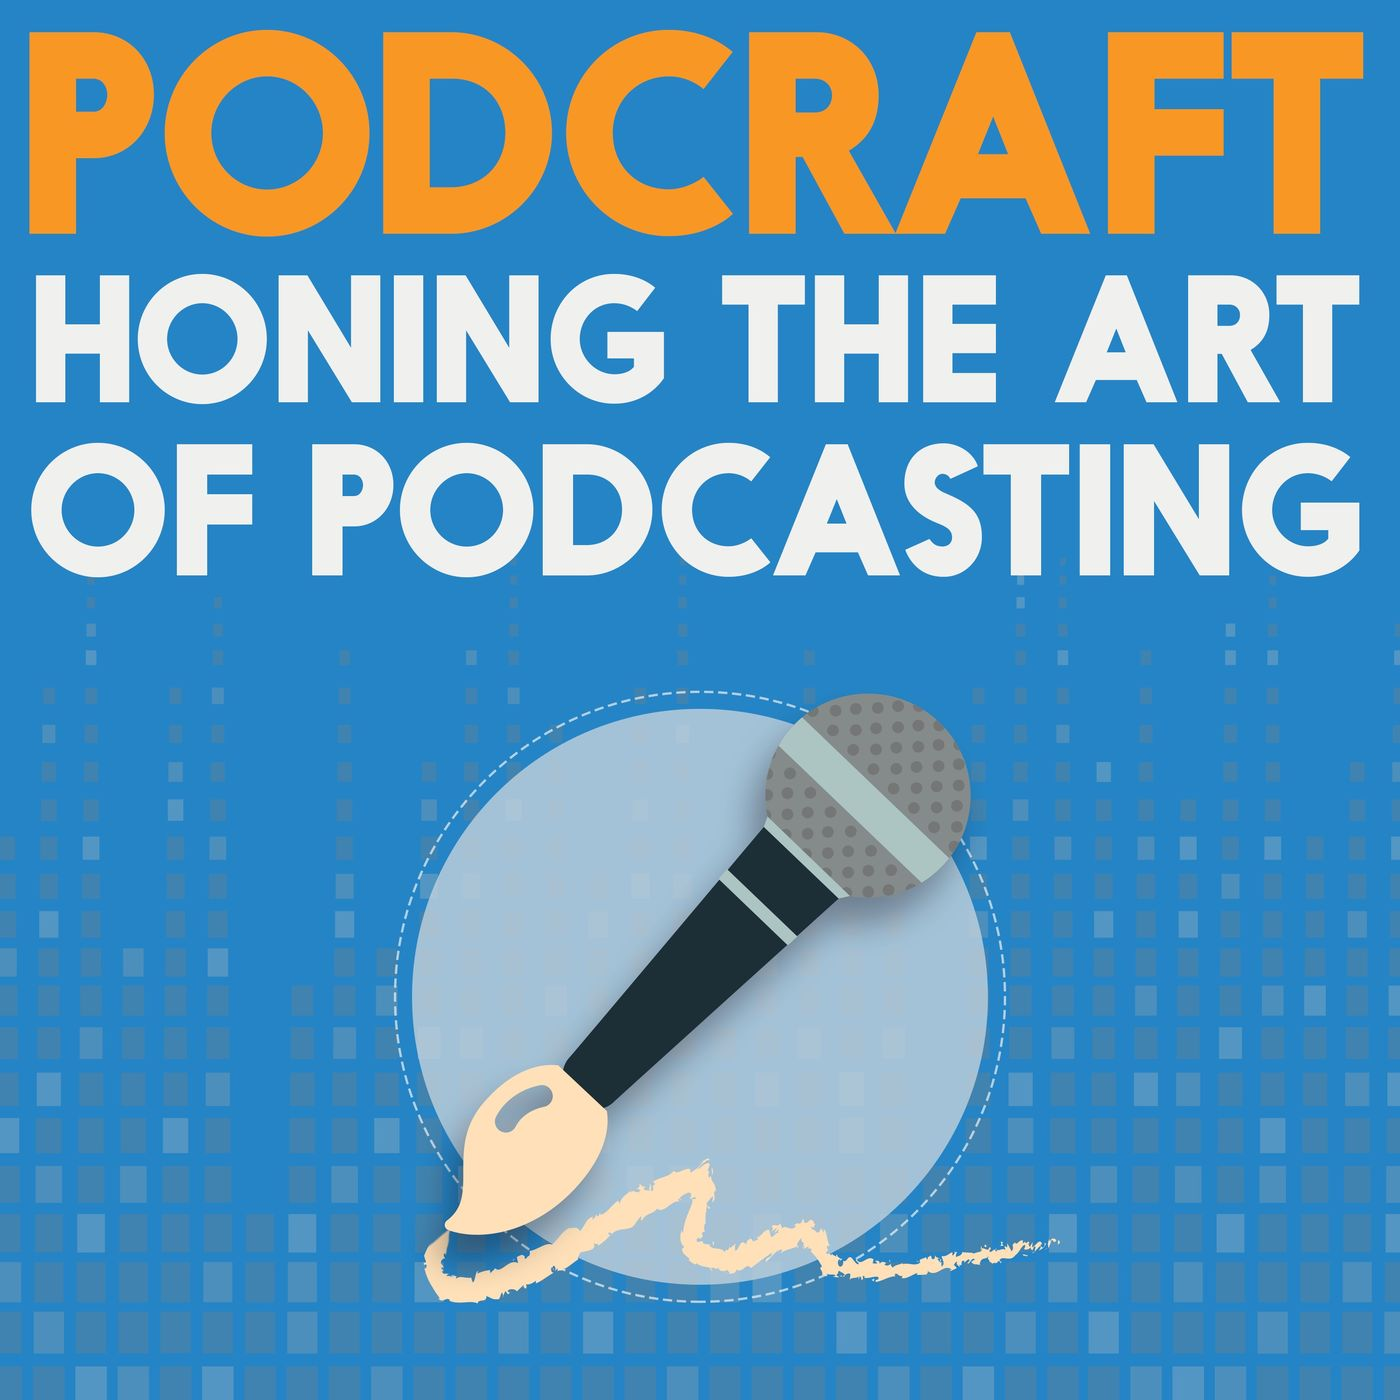 Audio Branding and UK Podcasting with Mike Russell   The Podcraft Podcast